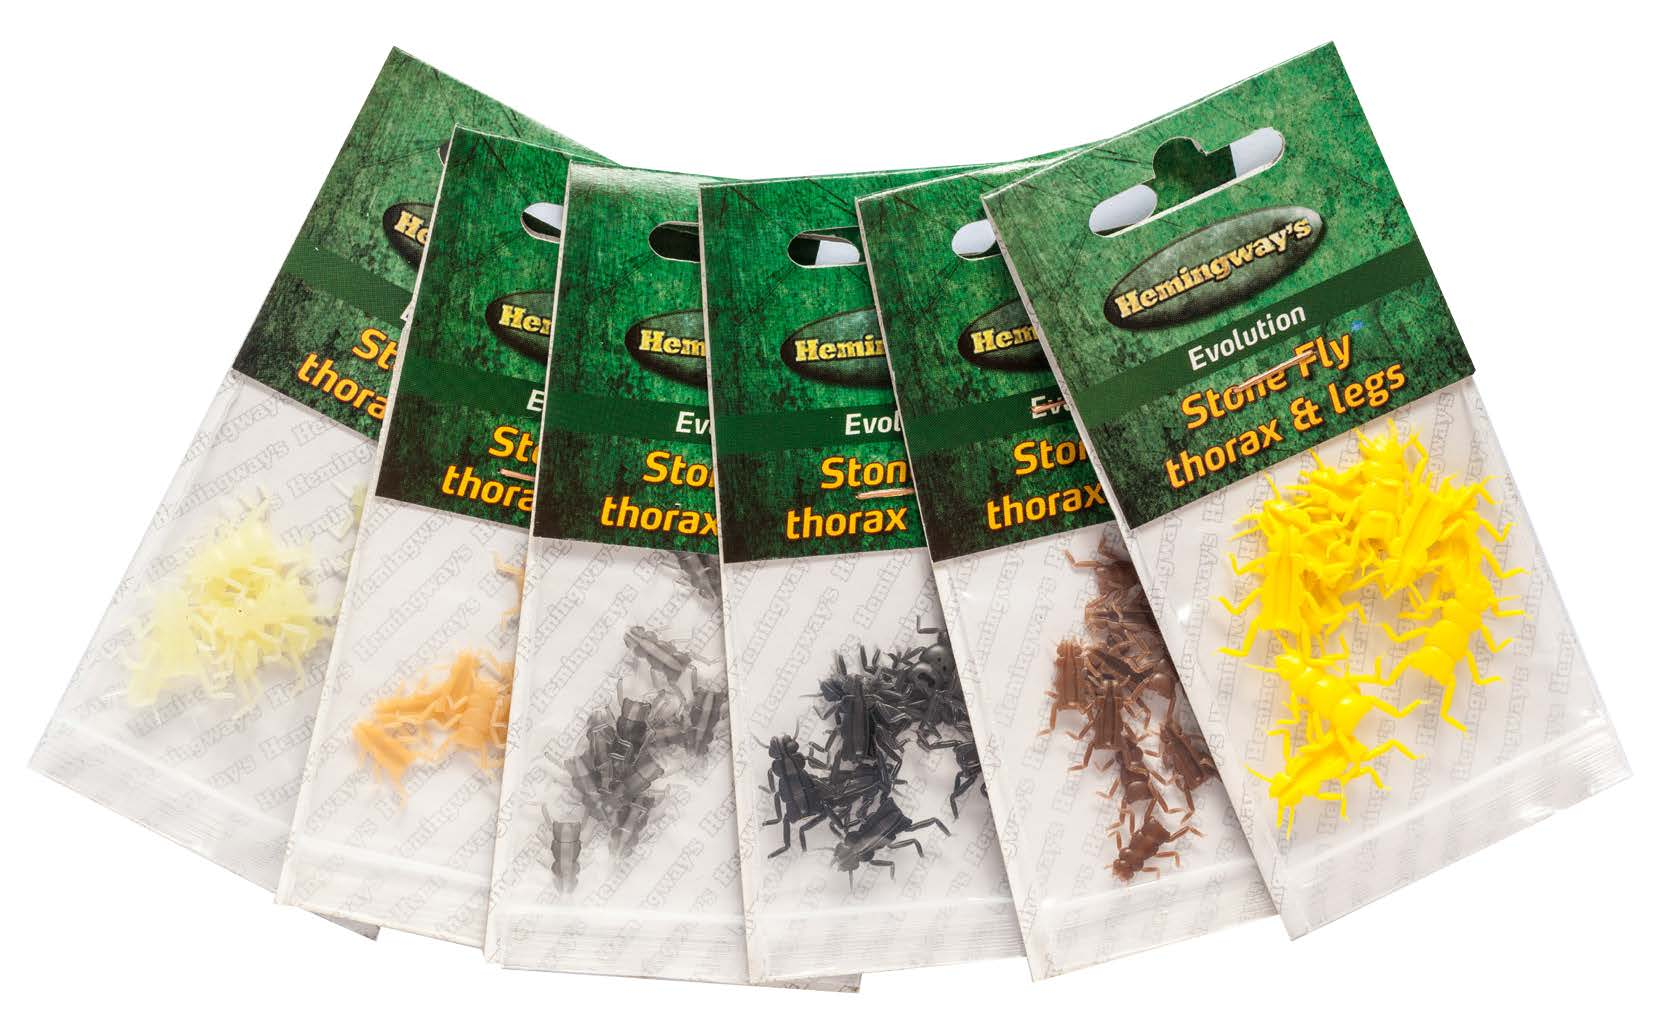 Hemingway's - Evolution Stone Fly Thorax & Legs - Medium - Clear Yellow